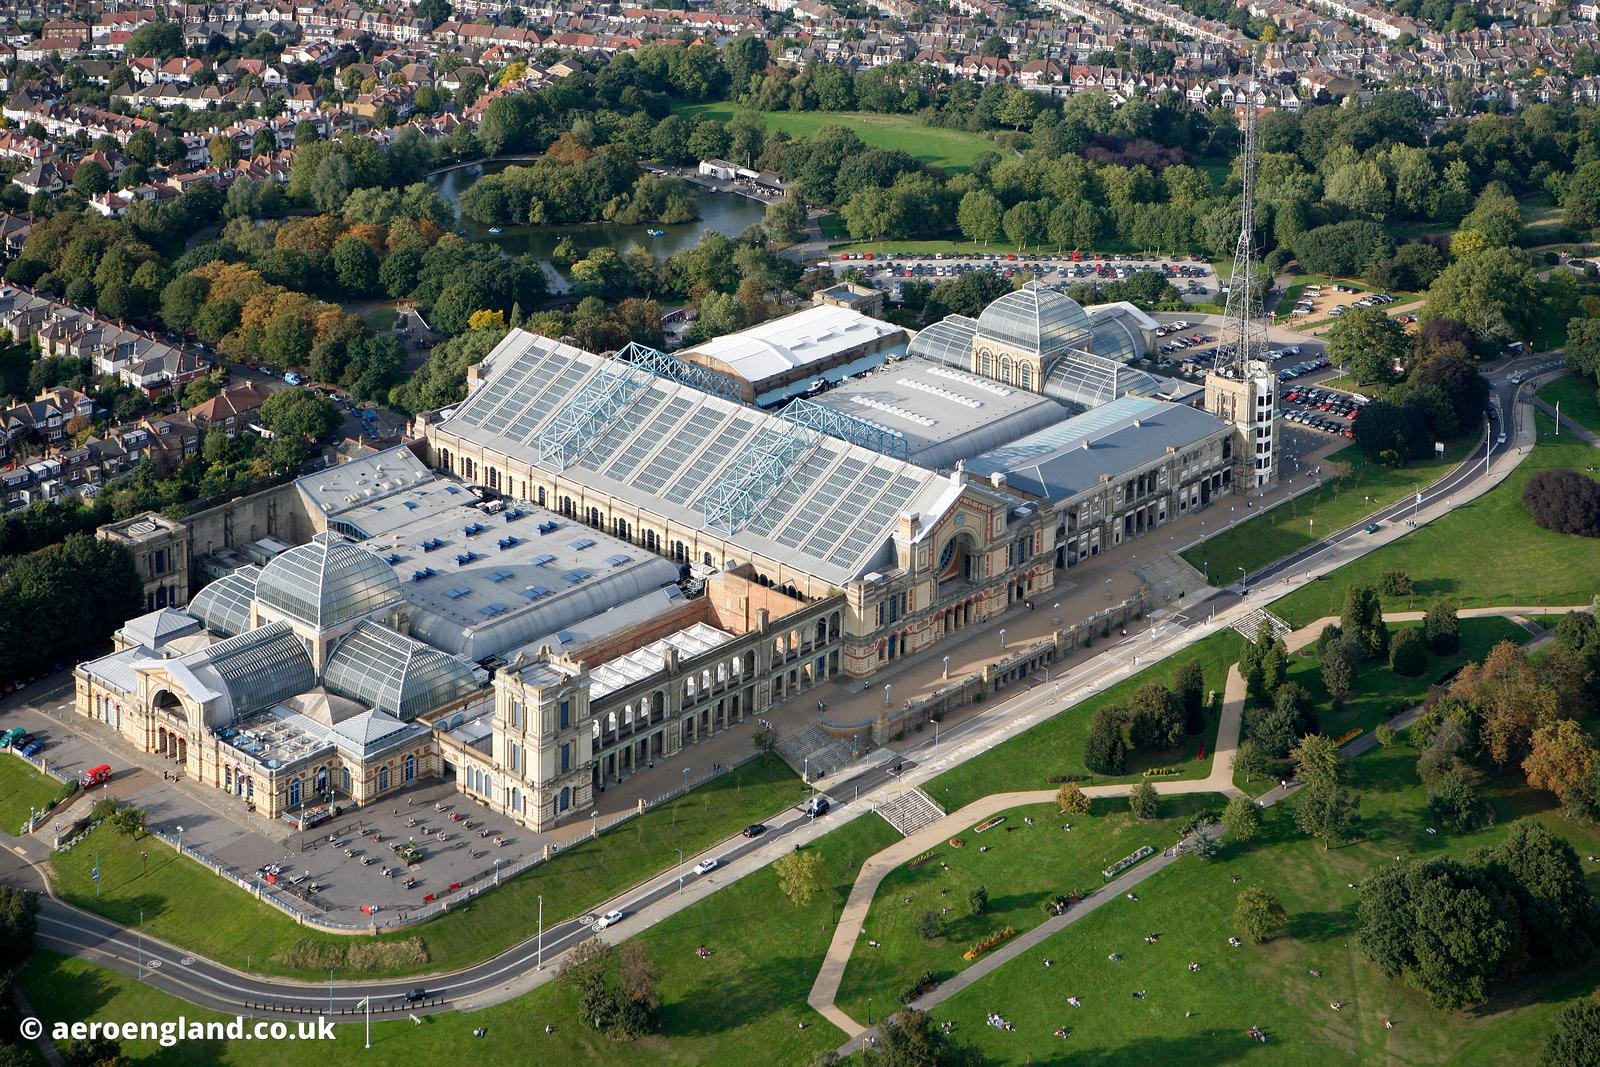 aerial photograph of  Alexander Palace  London UK